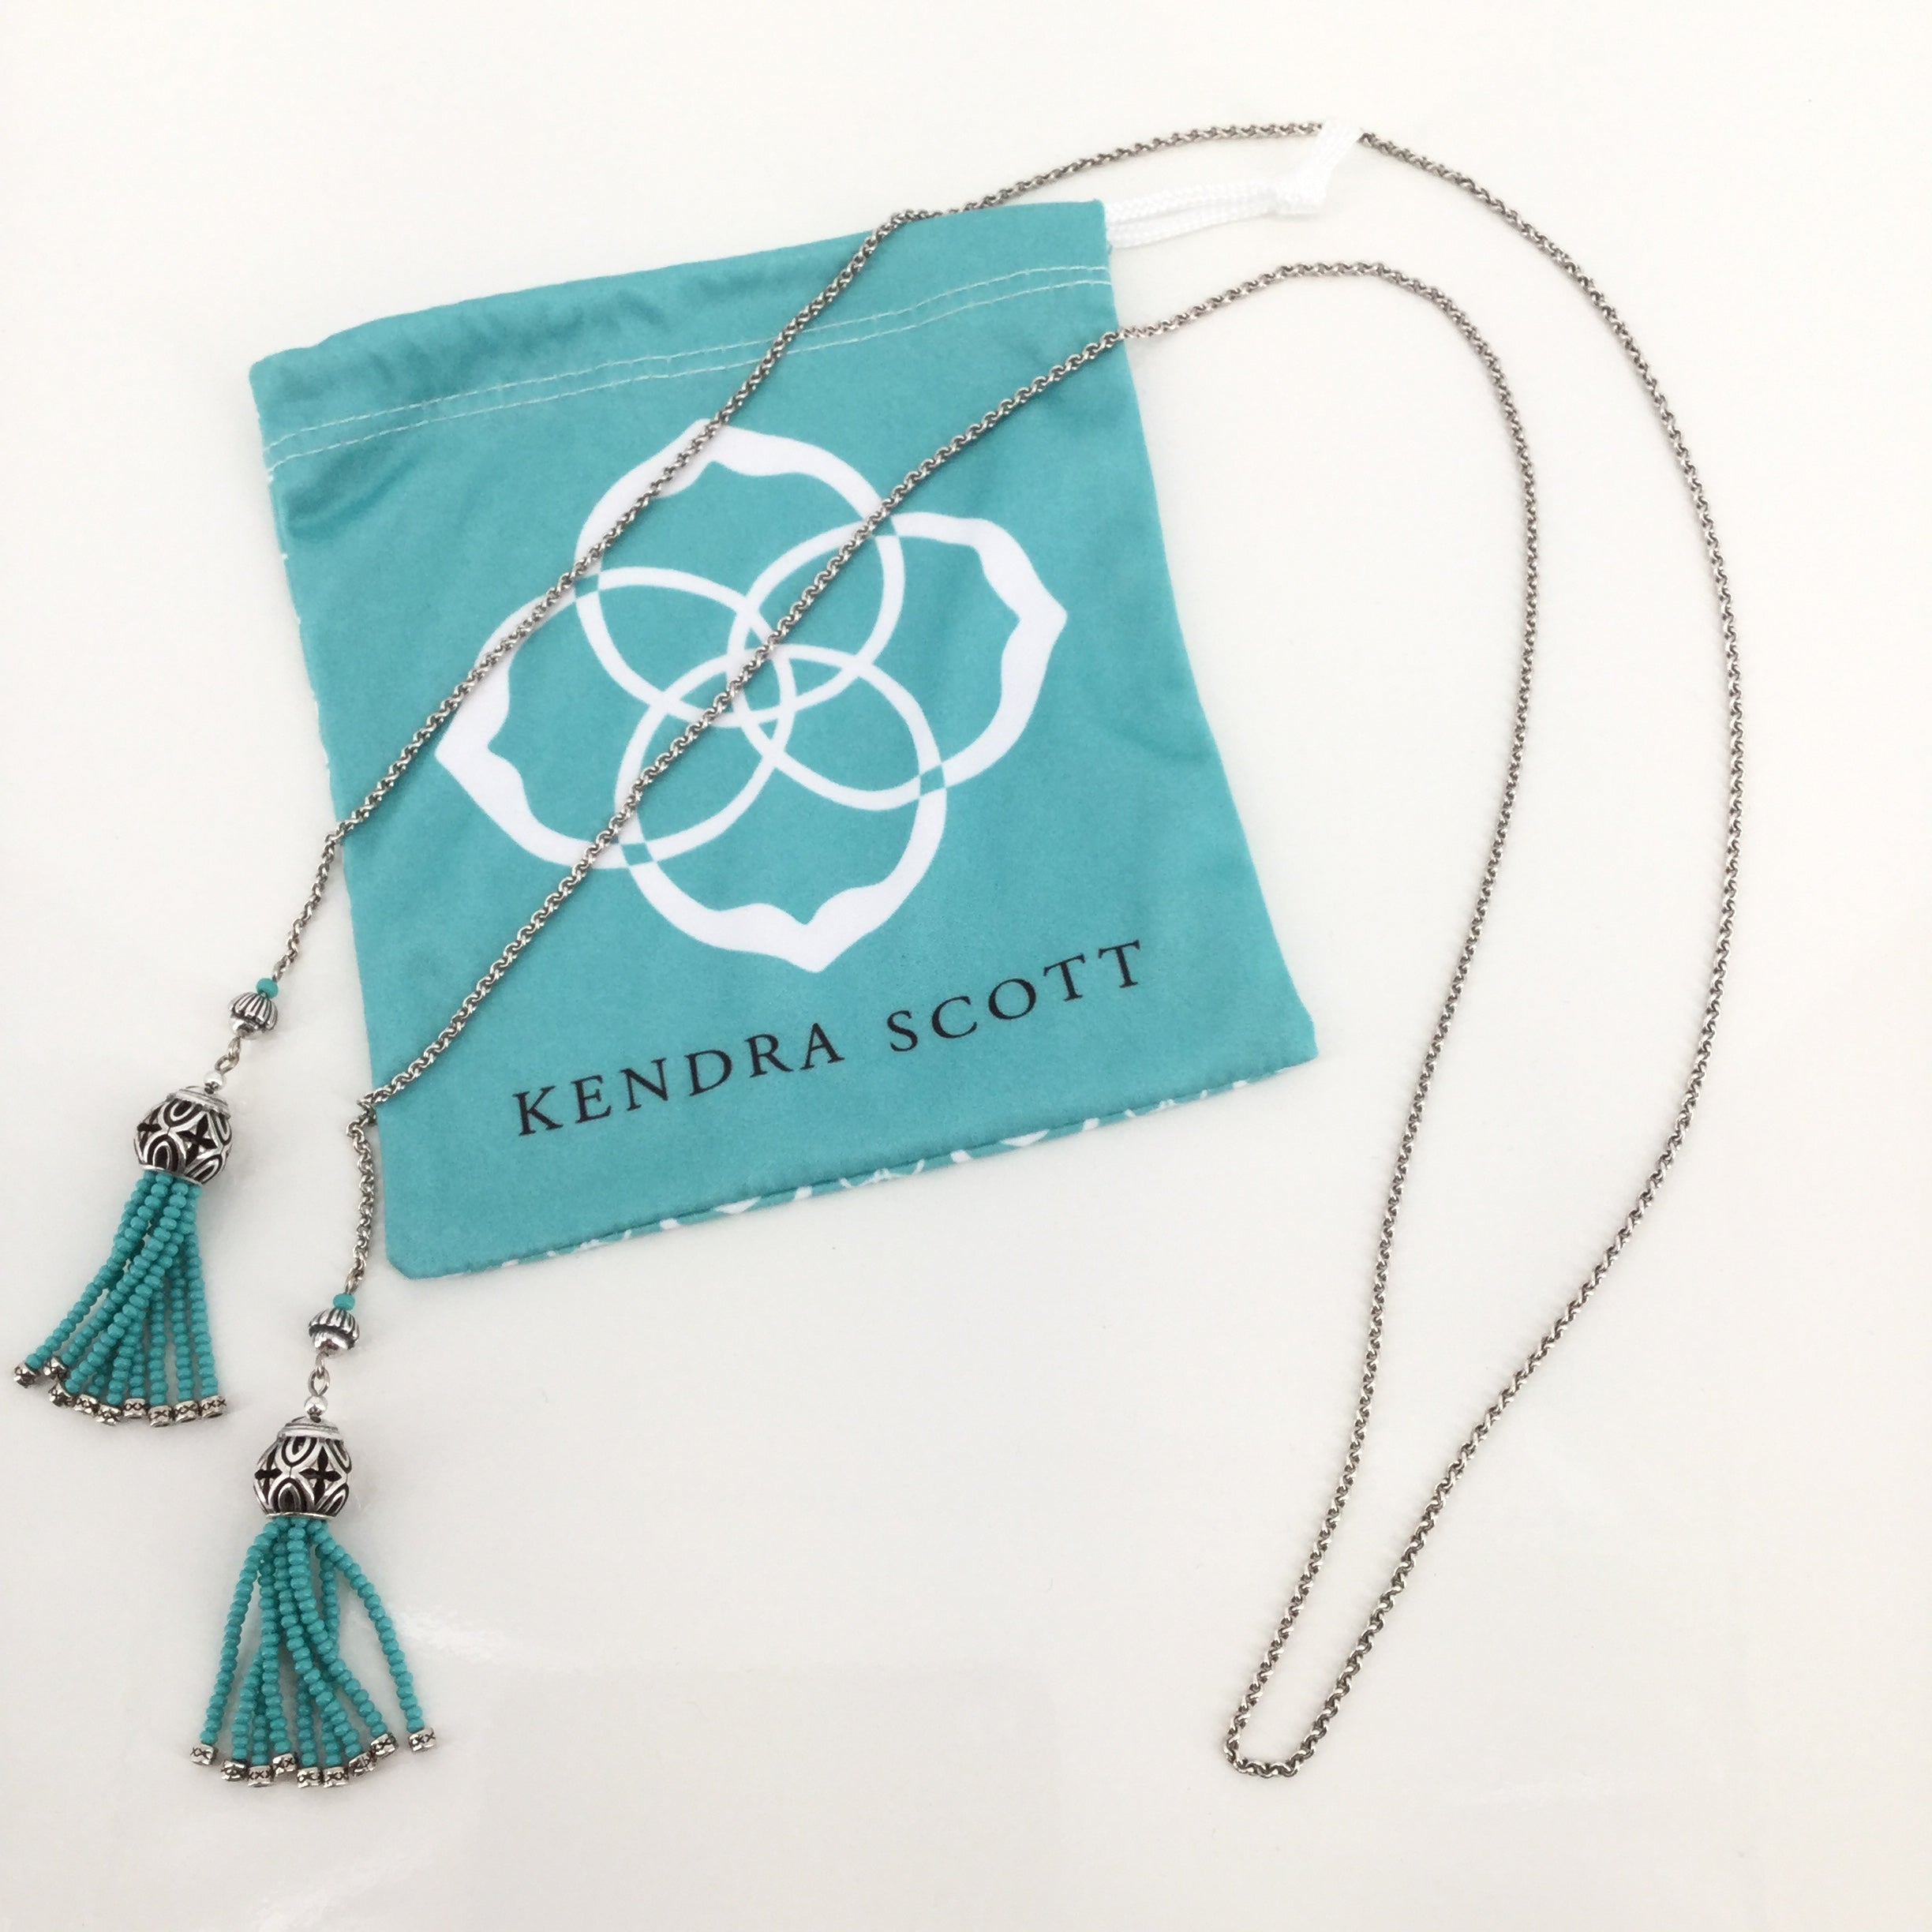 JEWELRY, - TURQUOISE WRAP NECKLACE SILVER CHAIN AND BALL DUST BAG INCLUDED